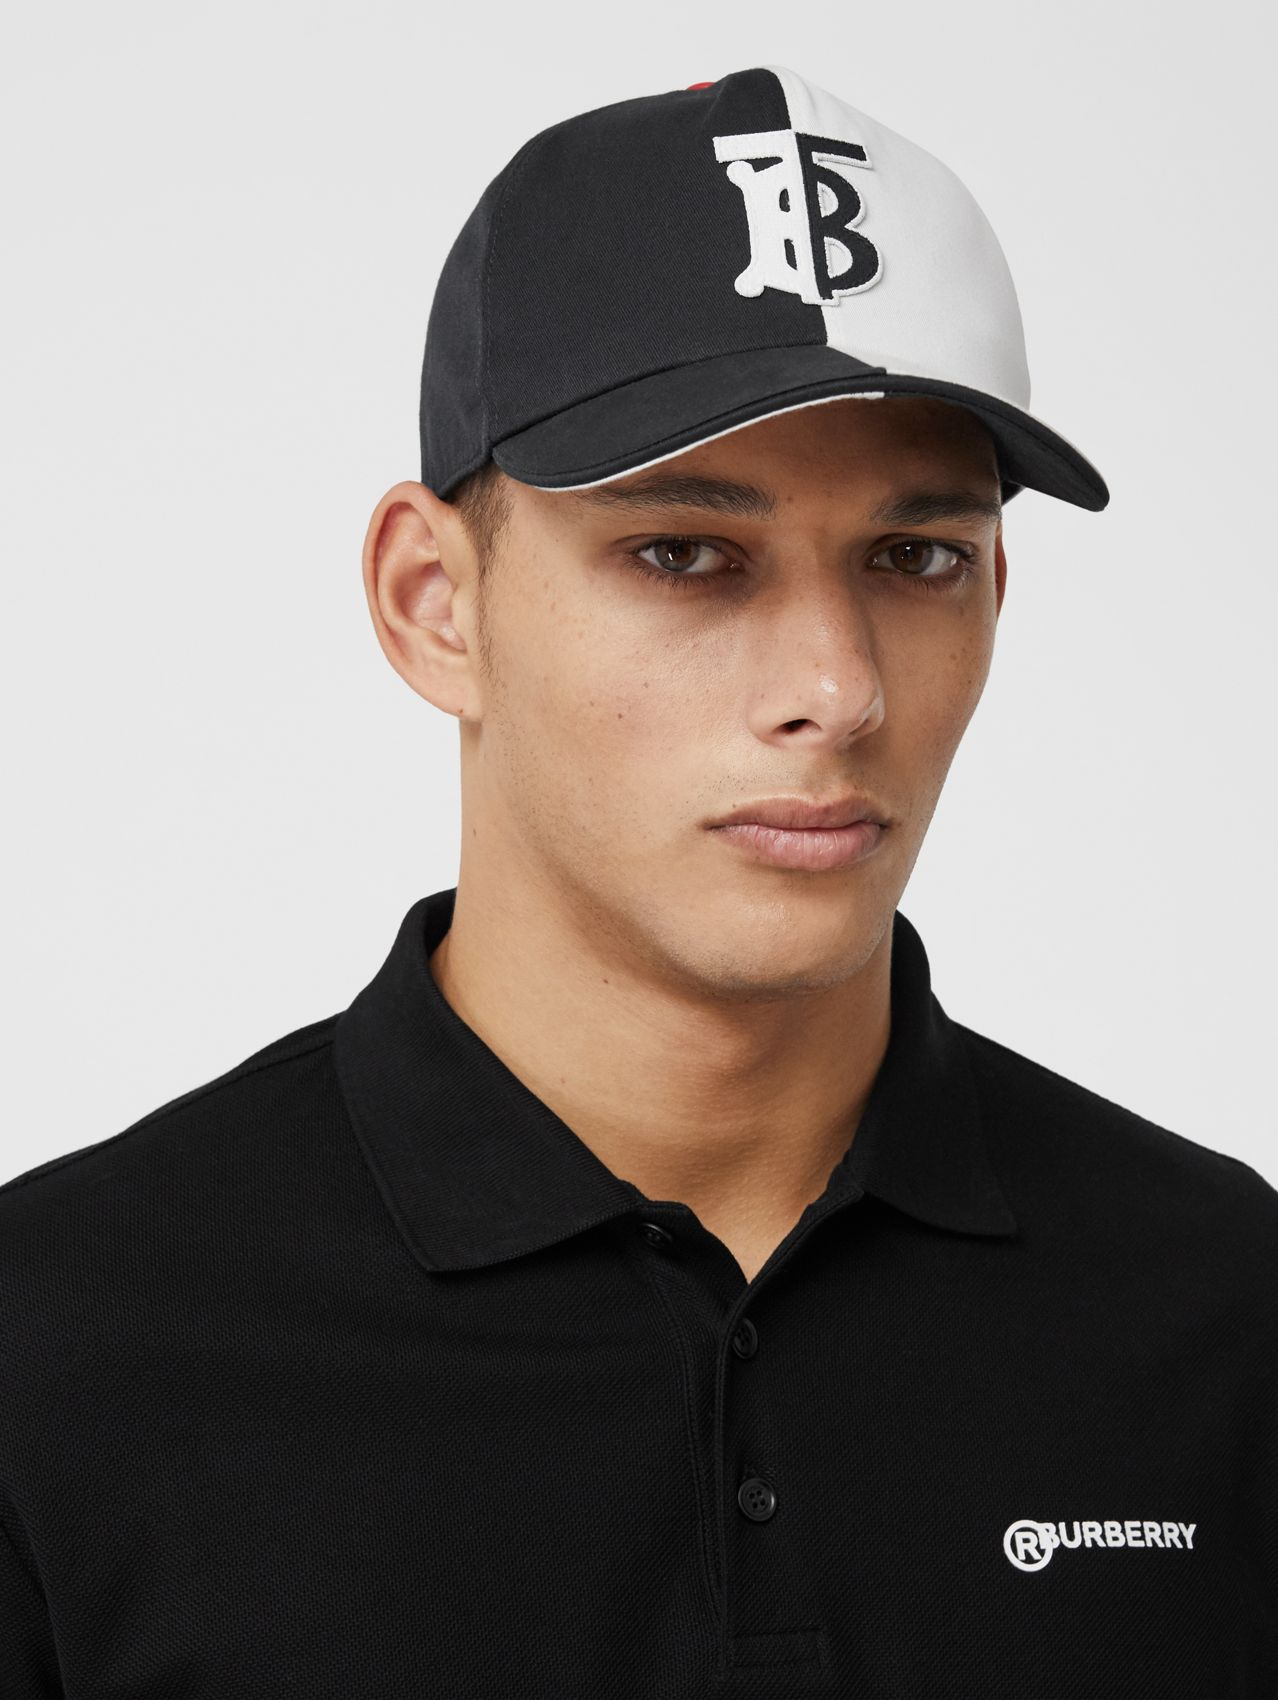 Monogram Motif Two-tone Cotton Baseball Cap (Black/white)